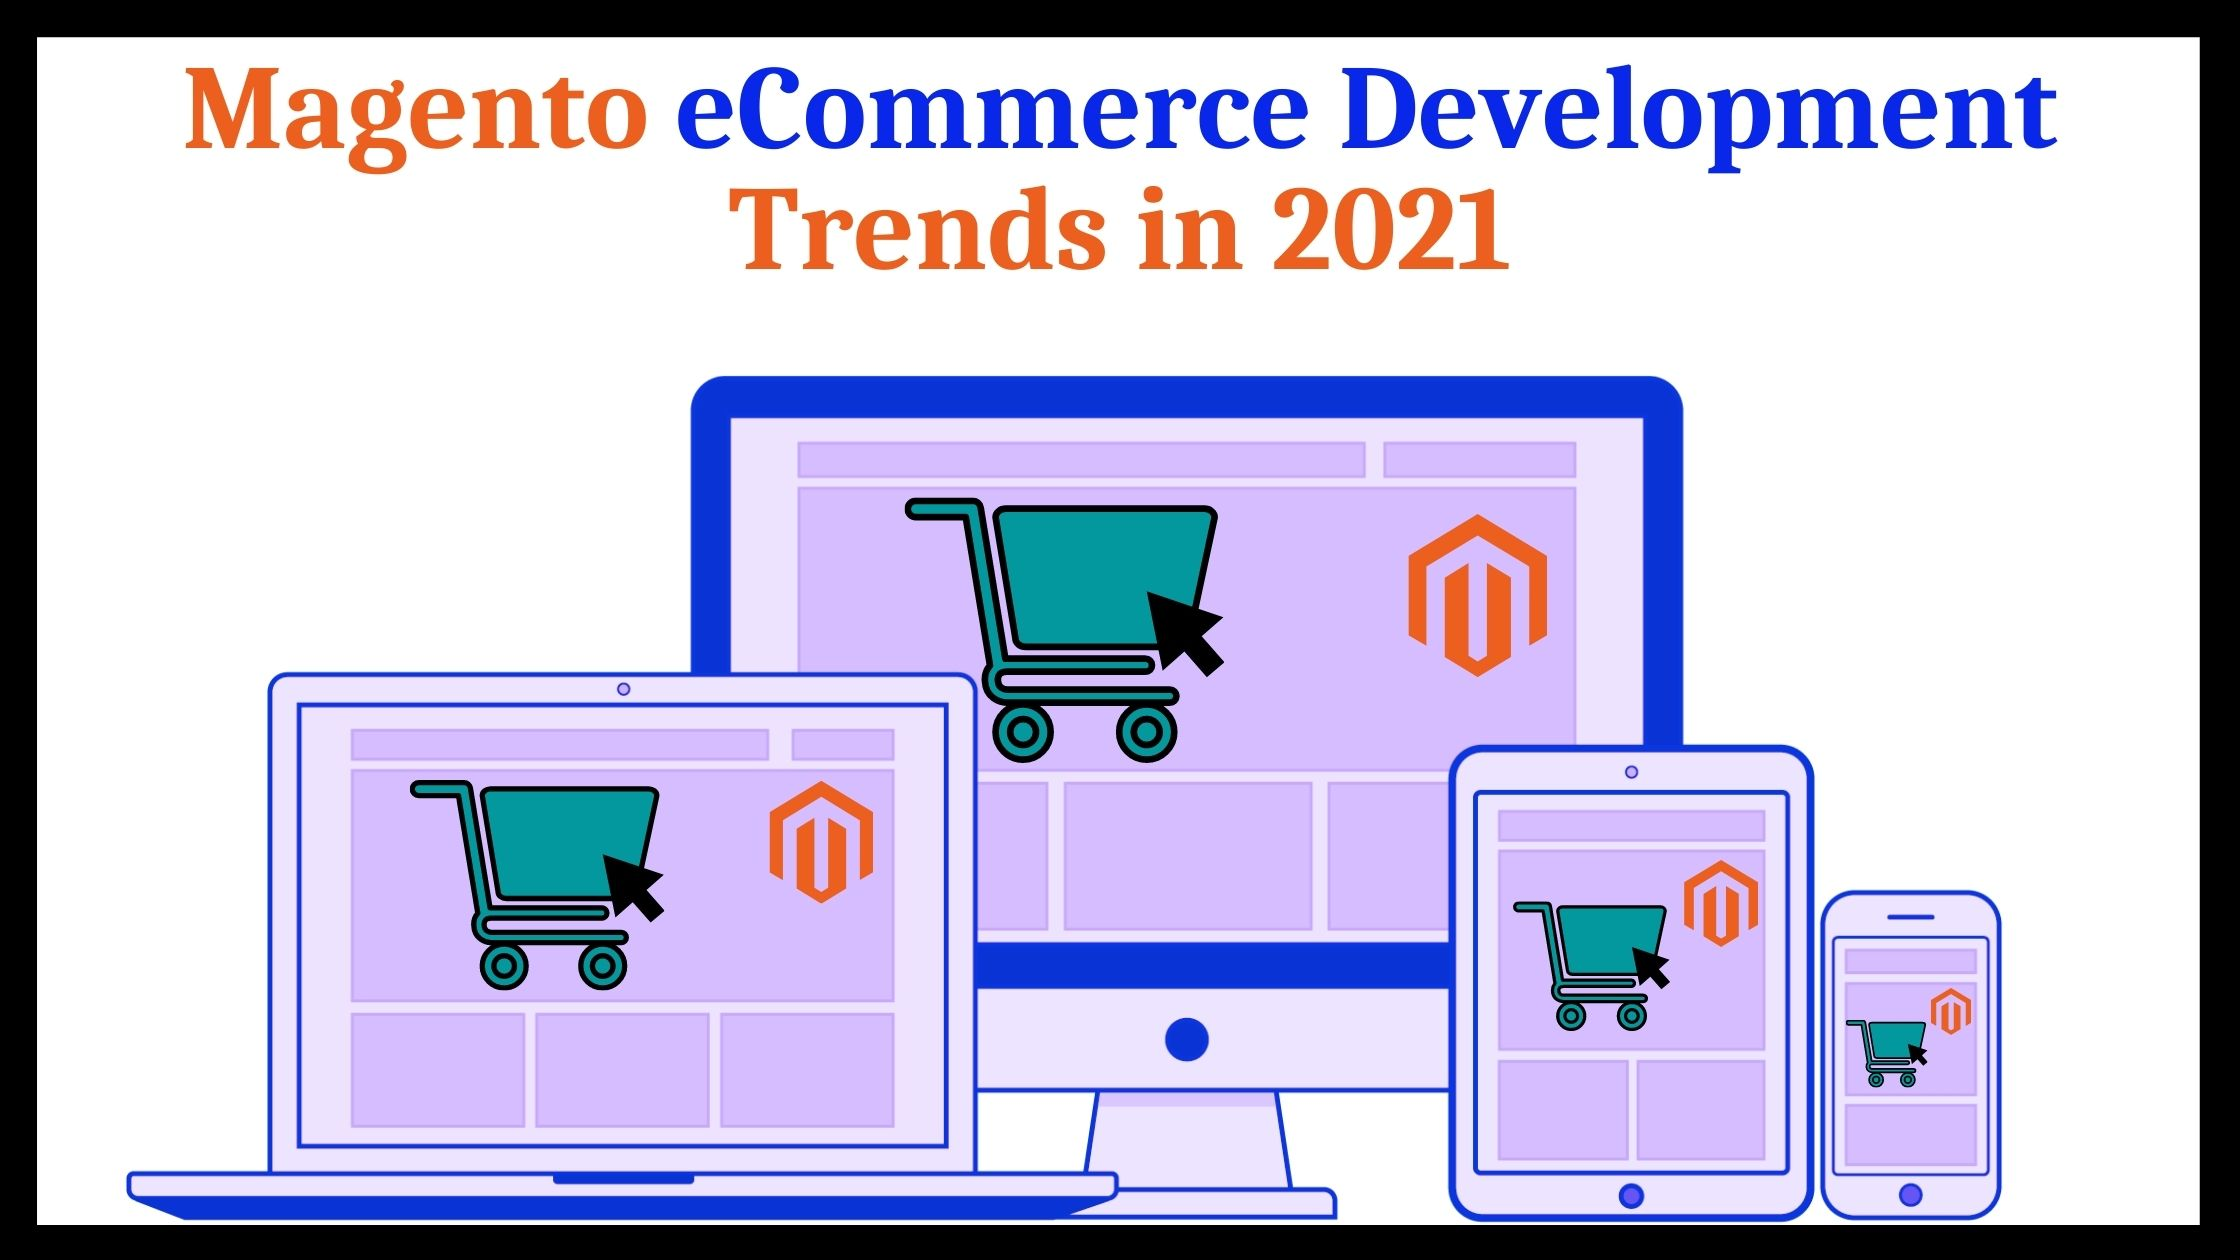 Magento Ecommerce Development Trends in 2021